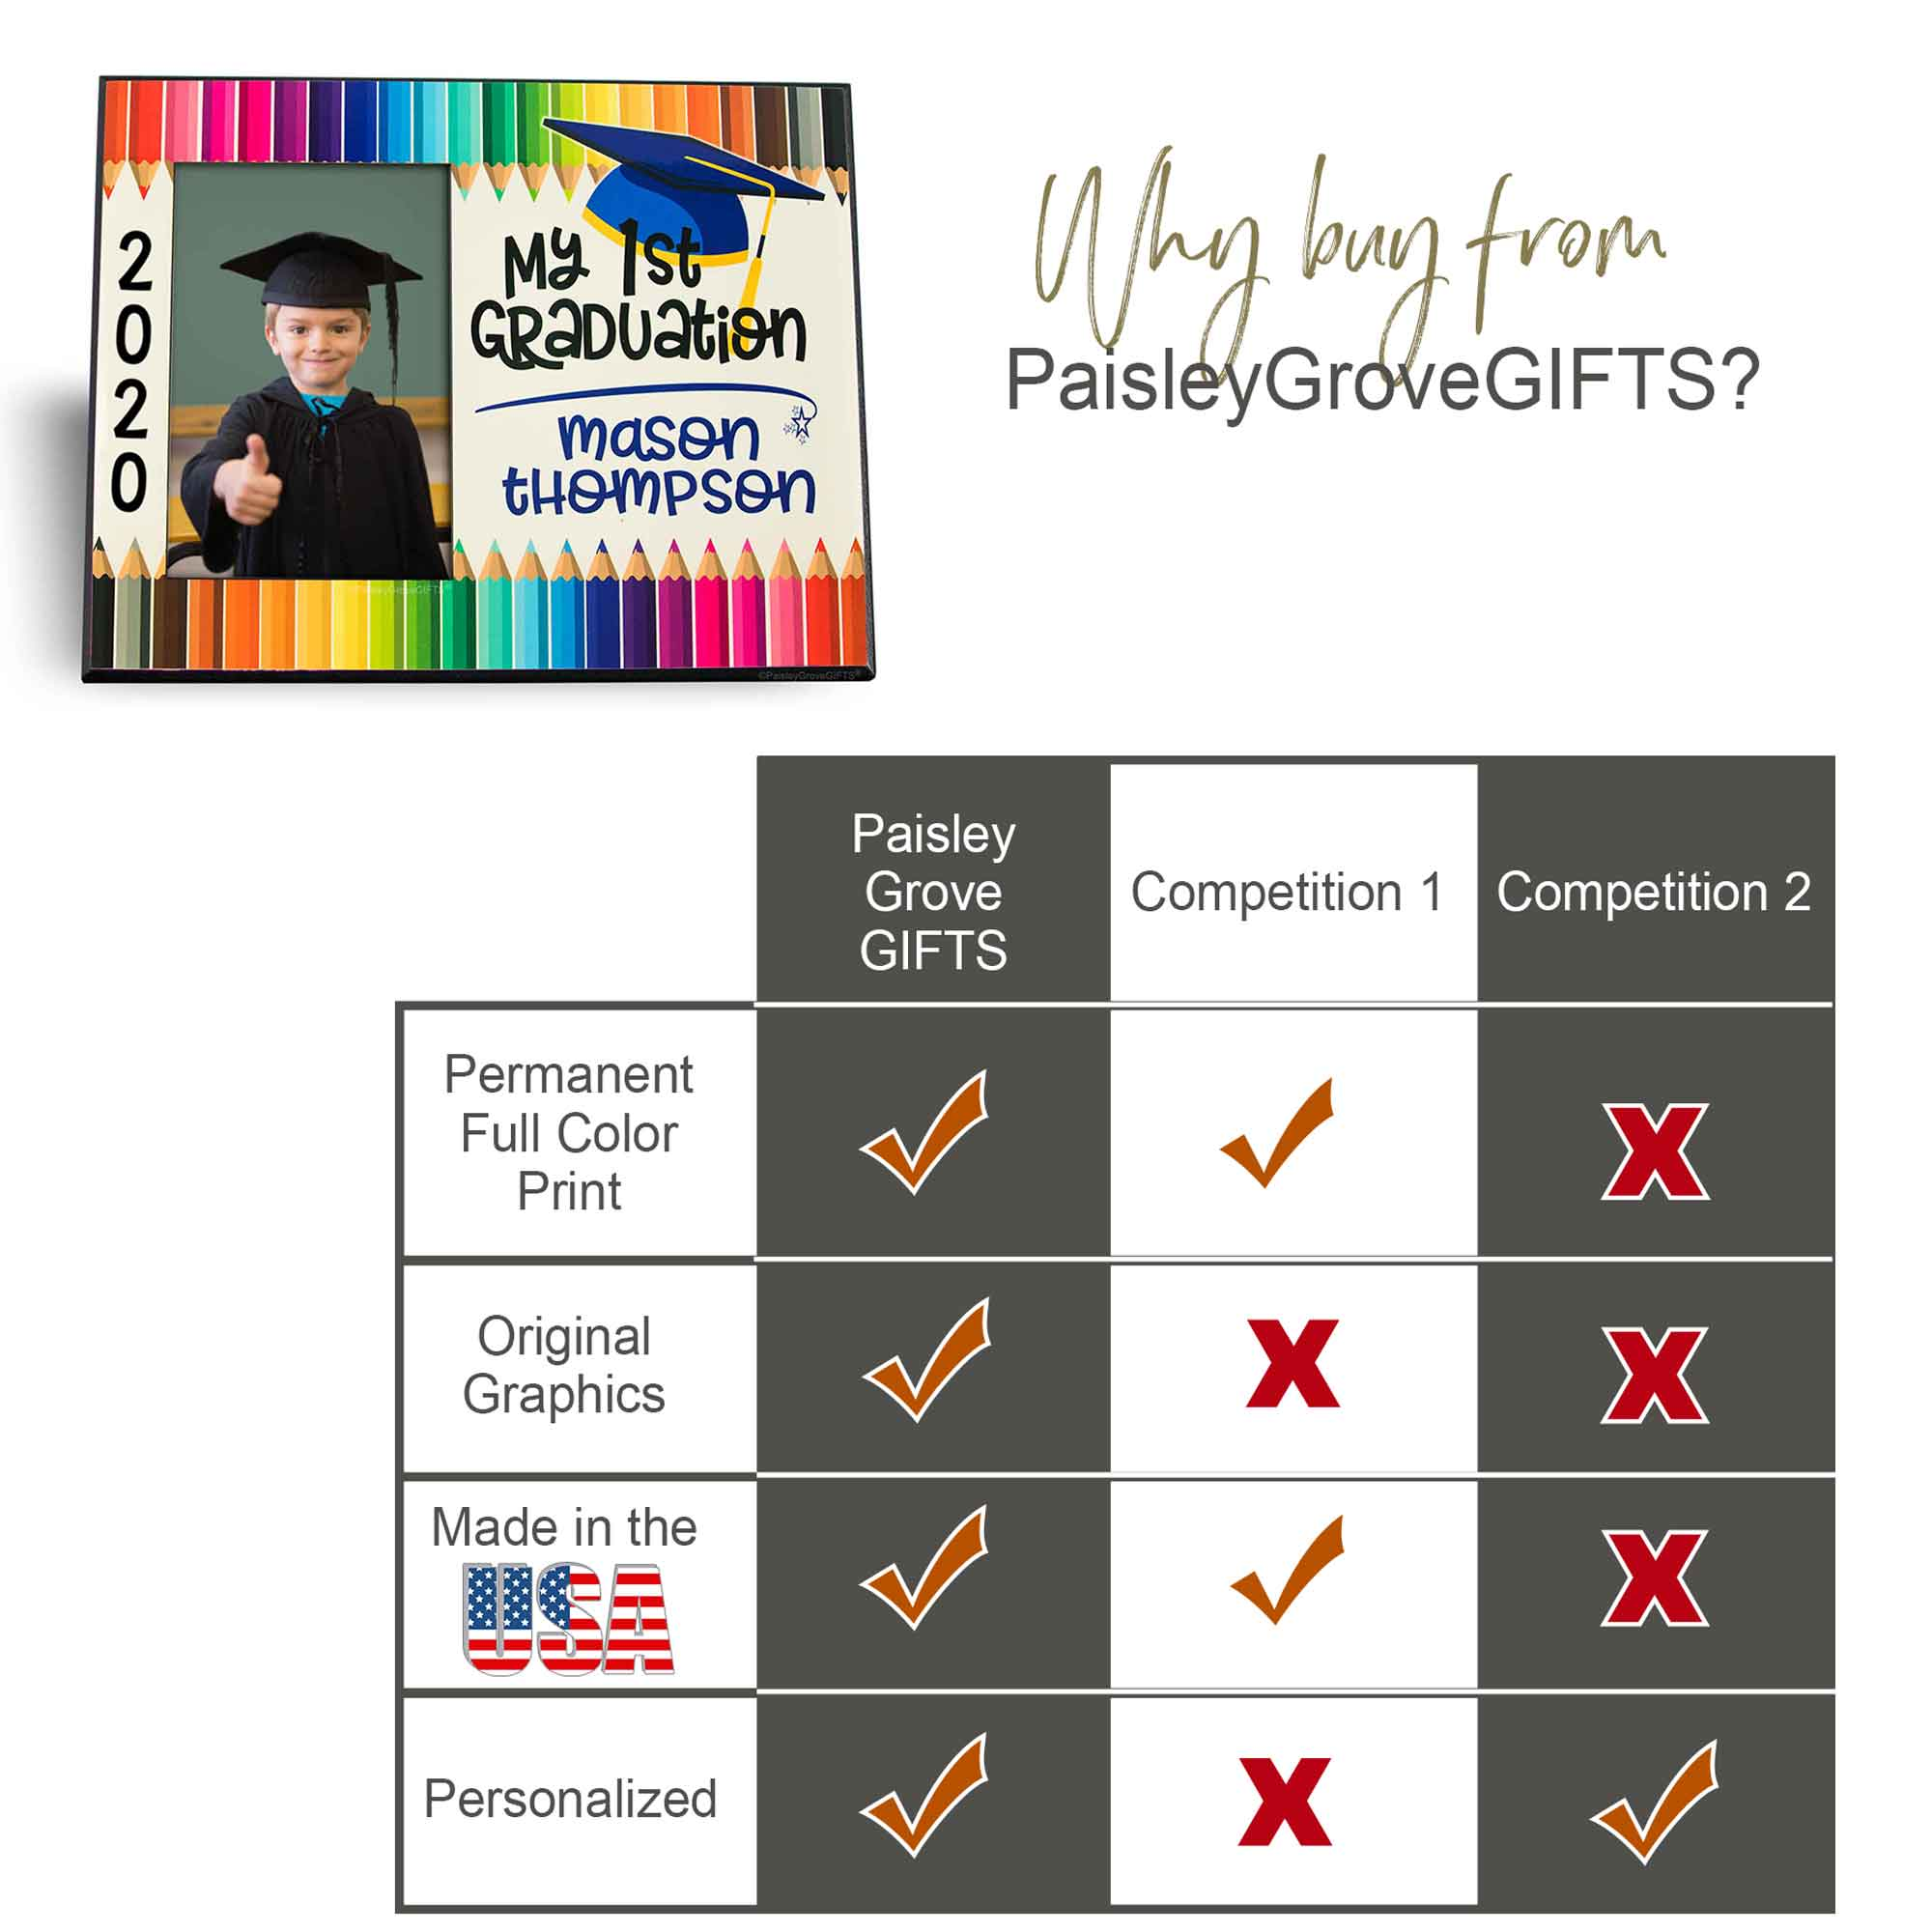 CopyrightPaisleyGroveGIFTS S228a Unique customized gift for preschool graduates, quality comparison chart